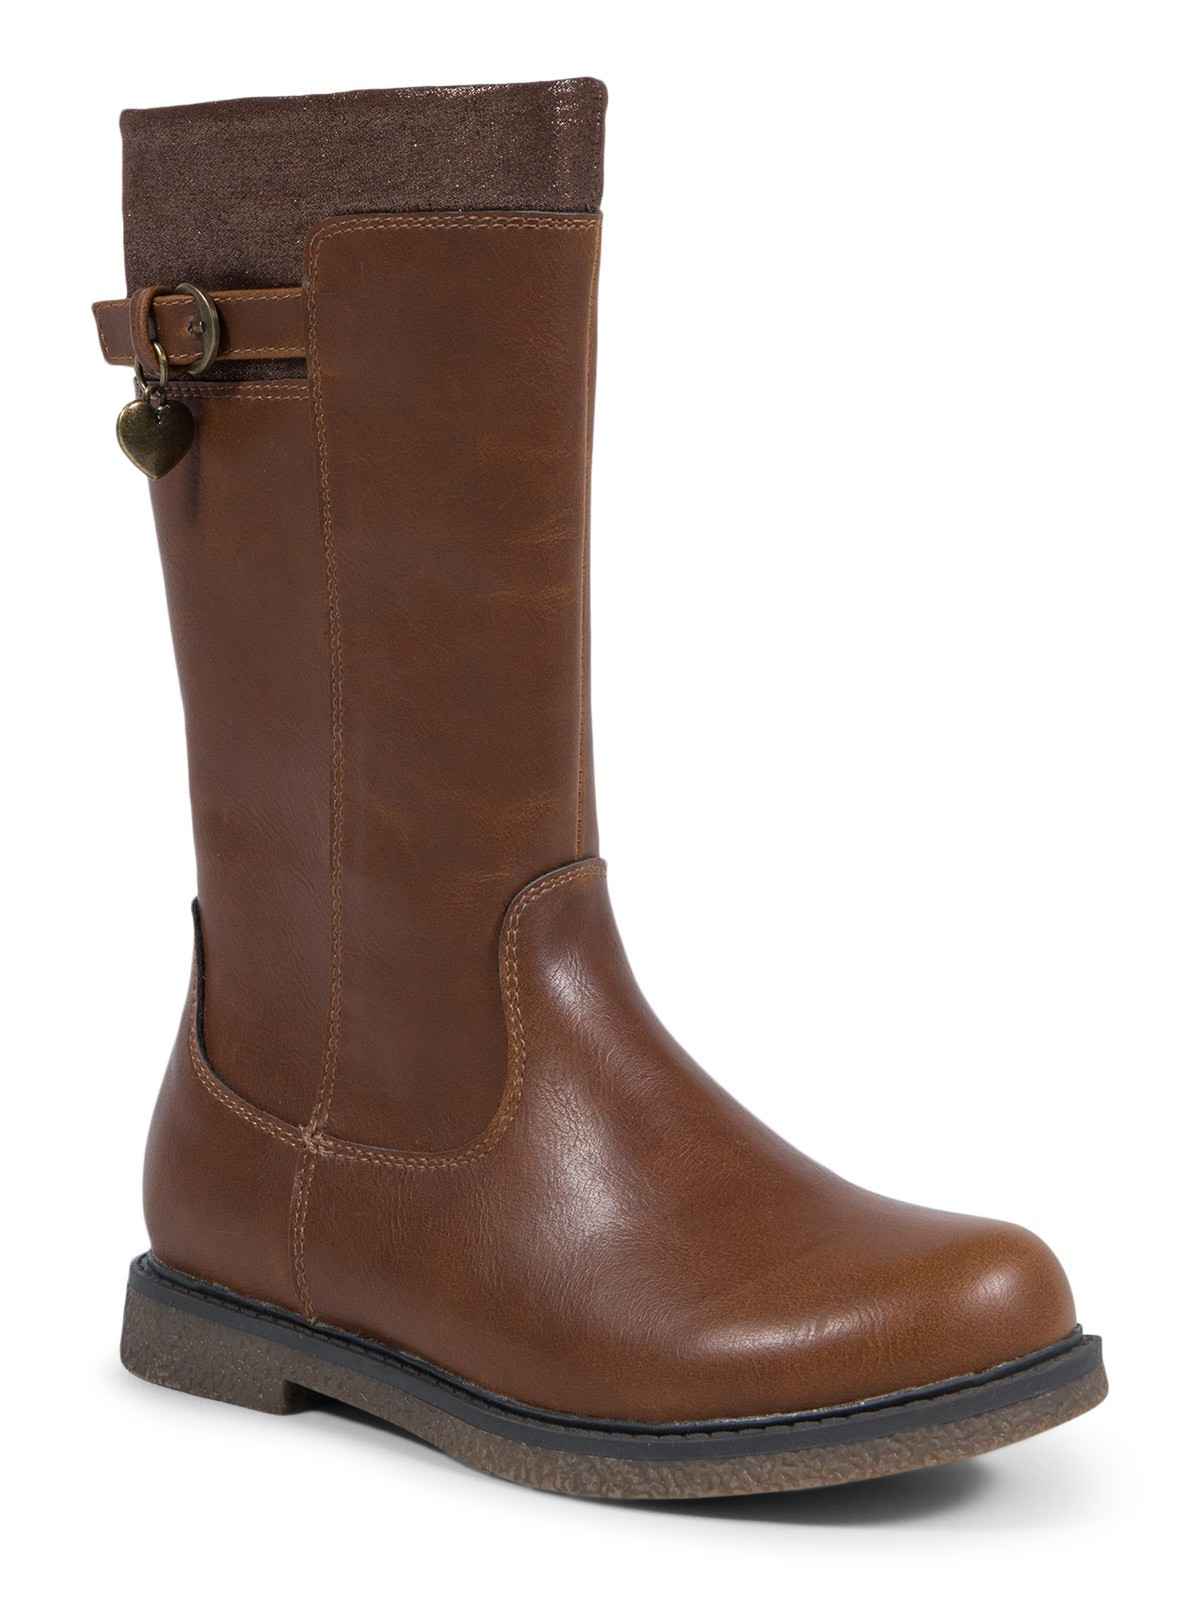 cd702ccb1fc31 Bottes marron fille (28-34) - DistriCenter